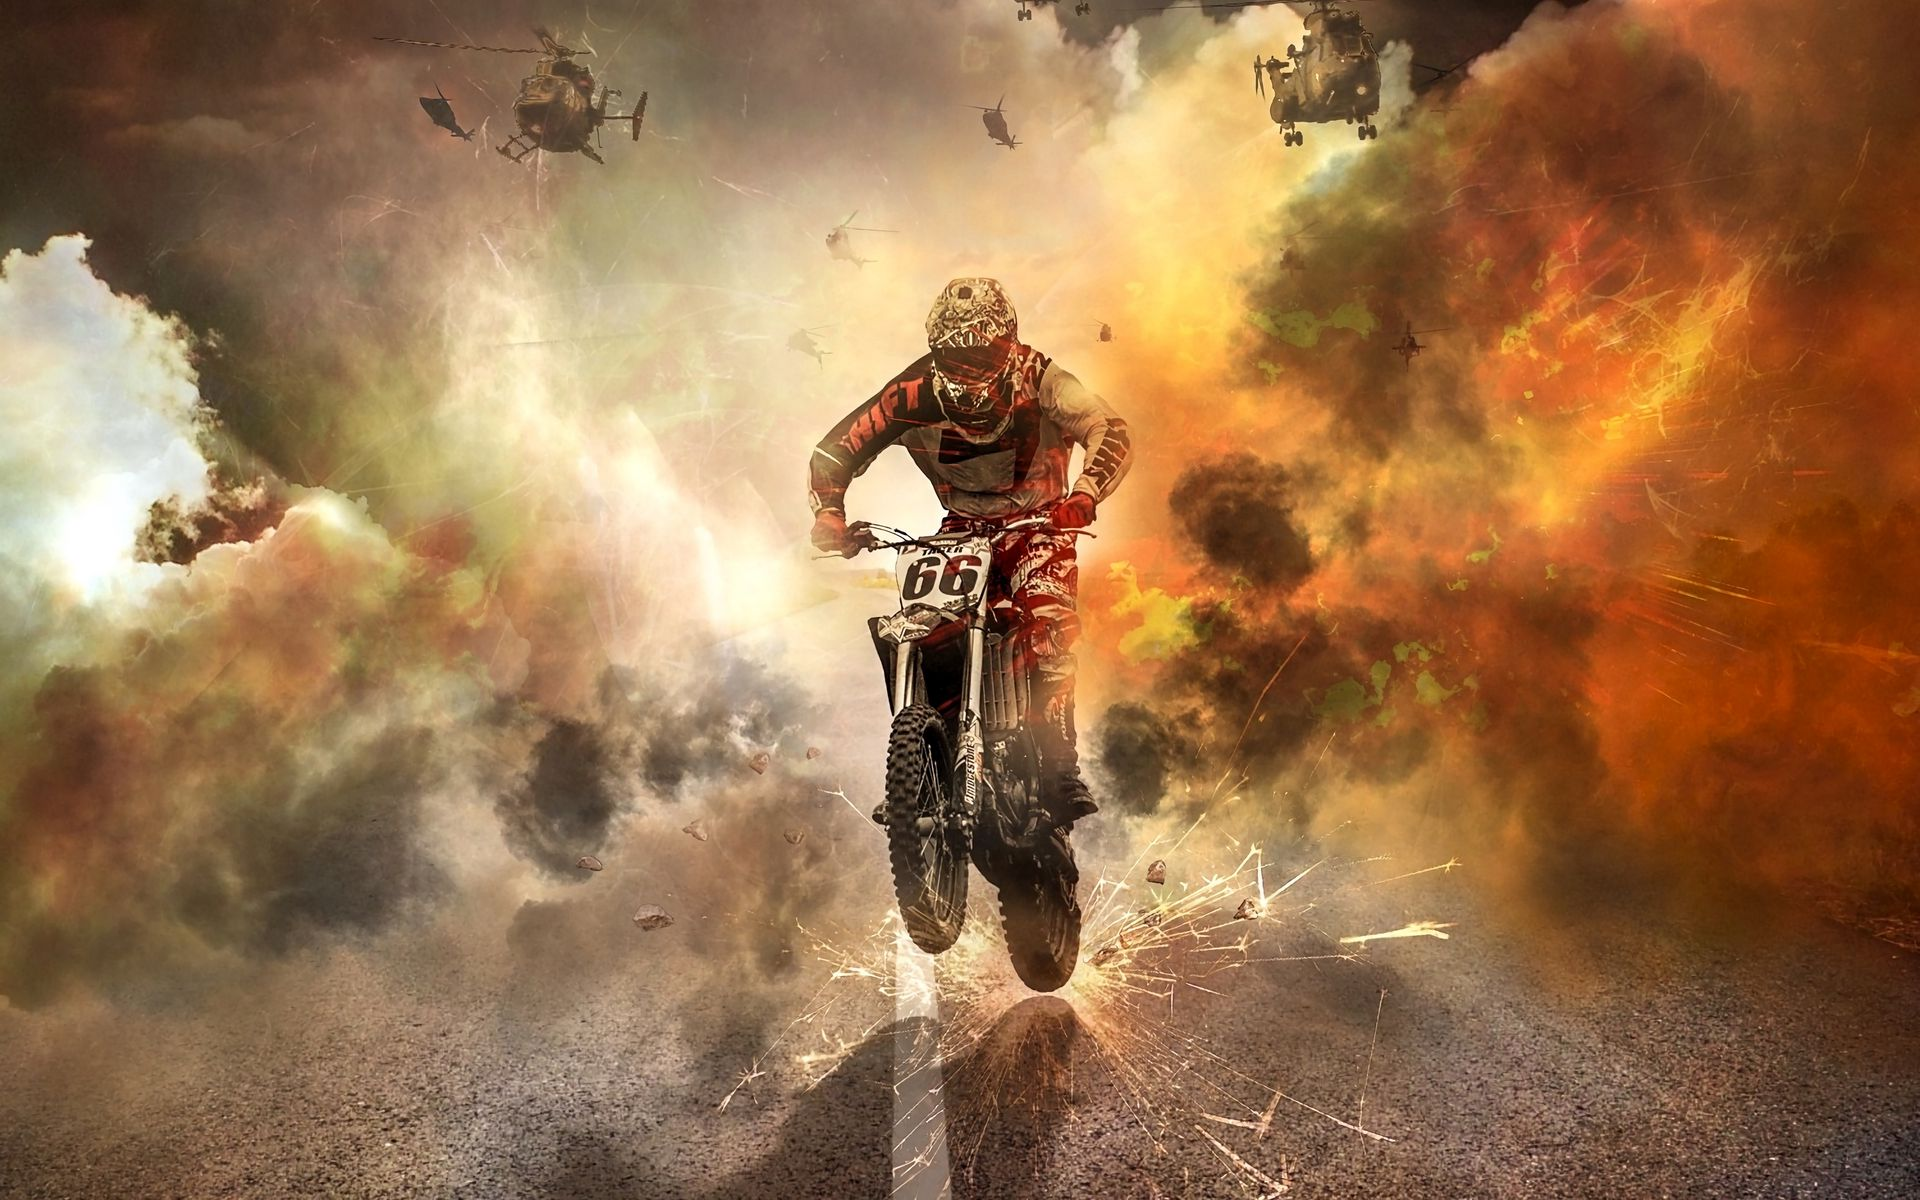 1920x1200 Wallpaper motorcyclist, motorcycle, helicopters, sparks, fire, road